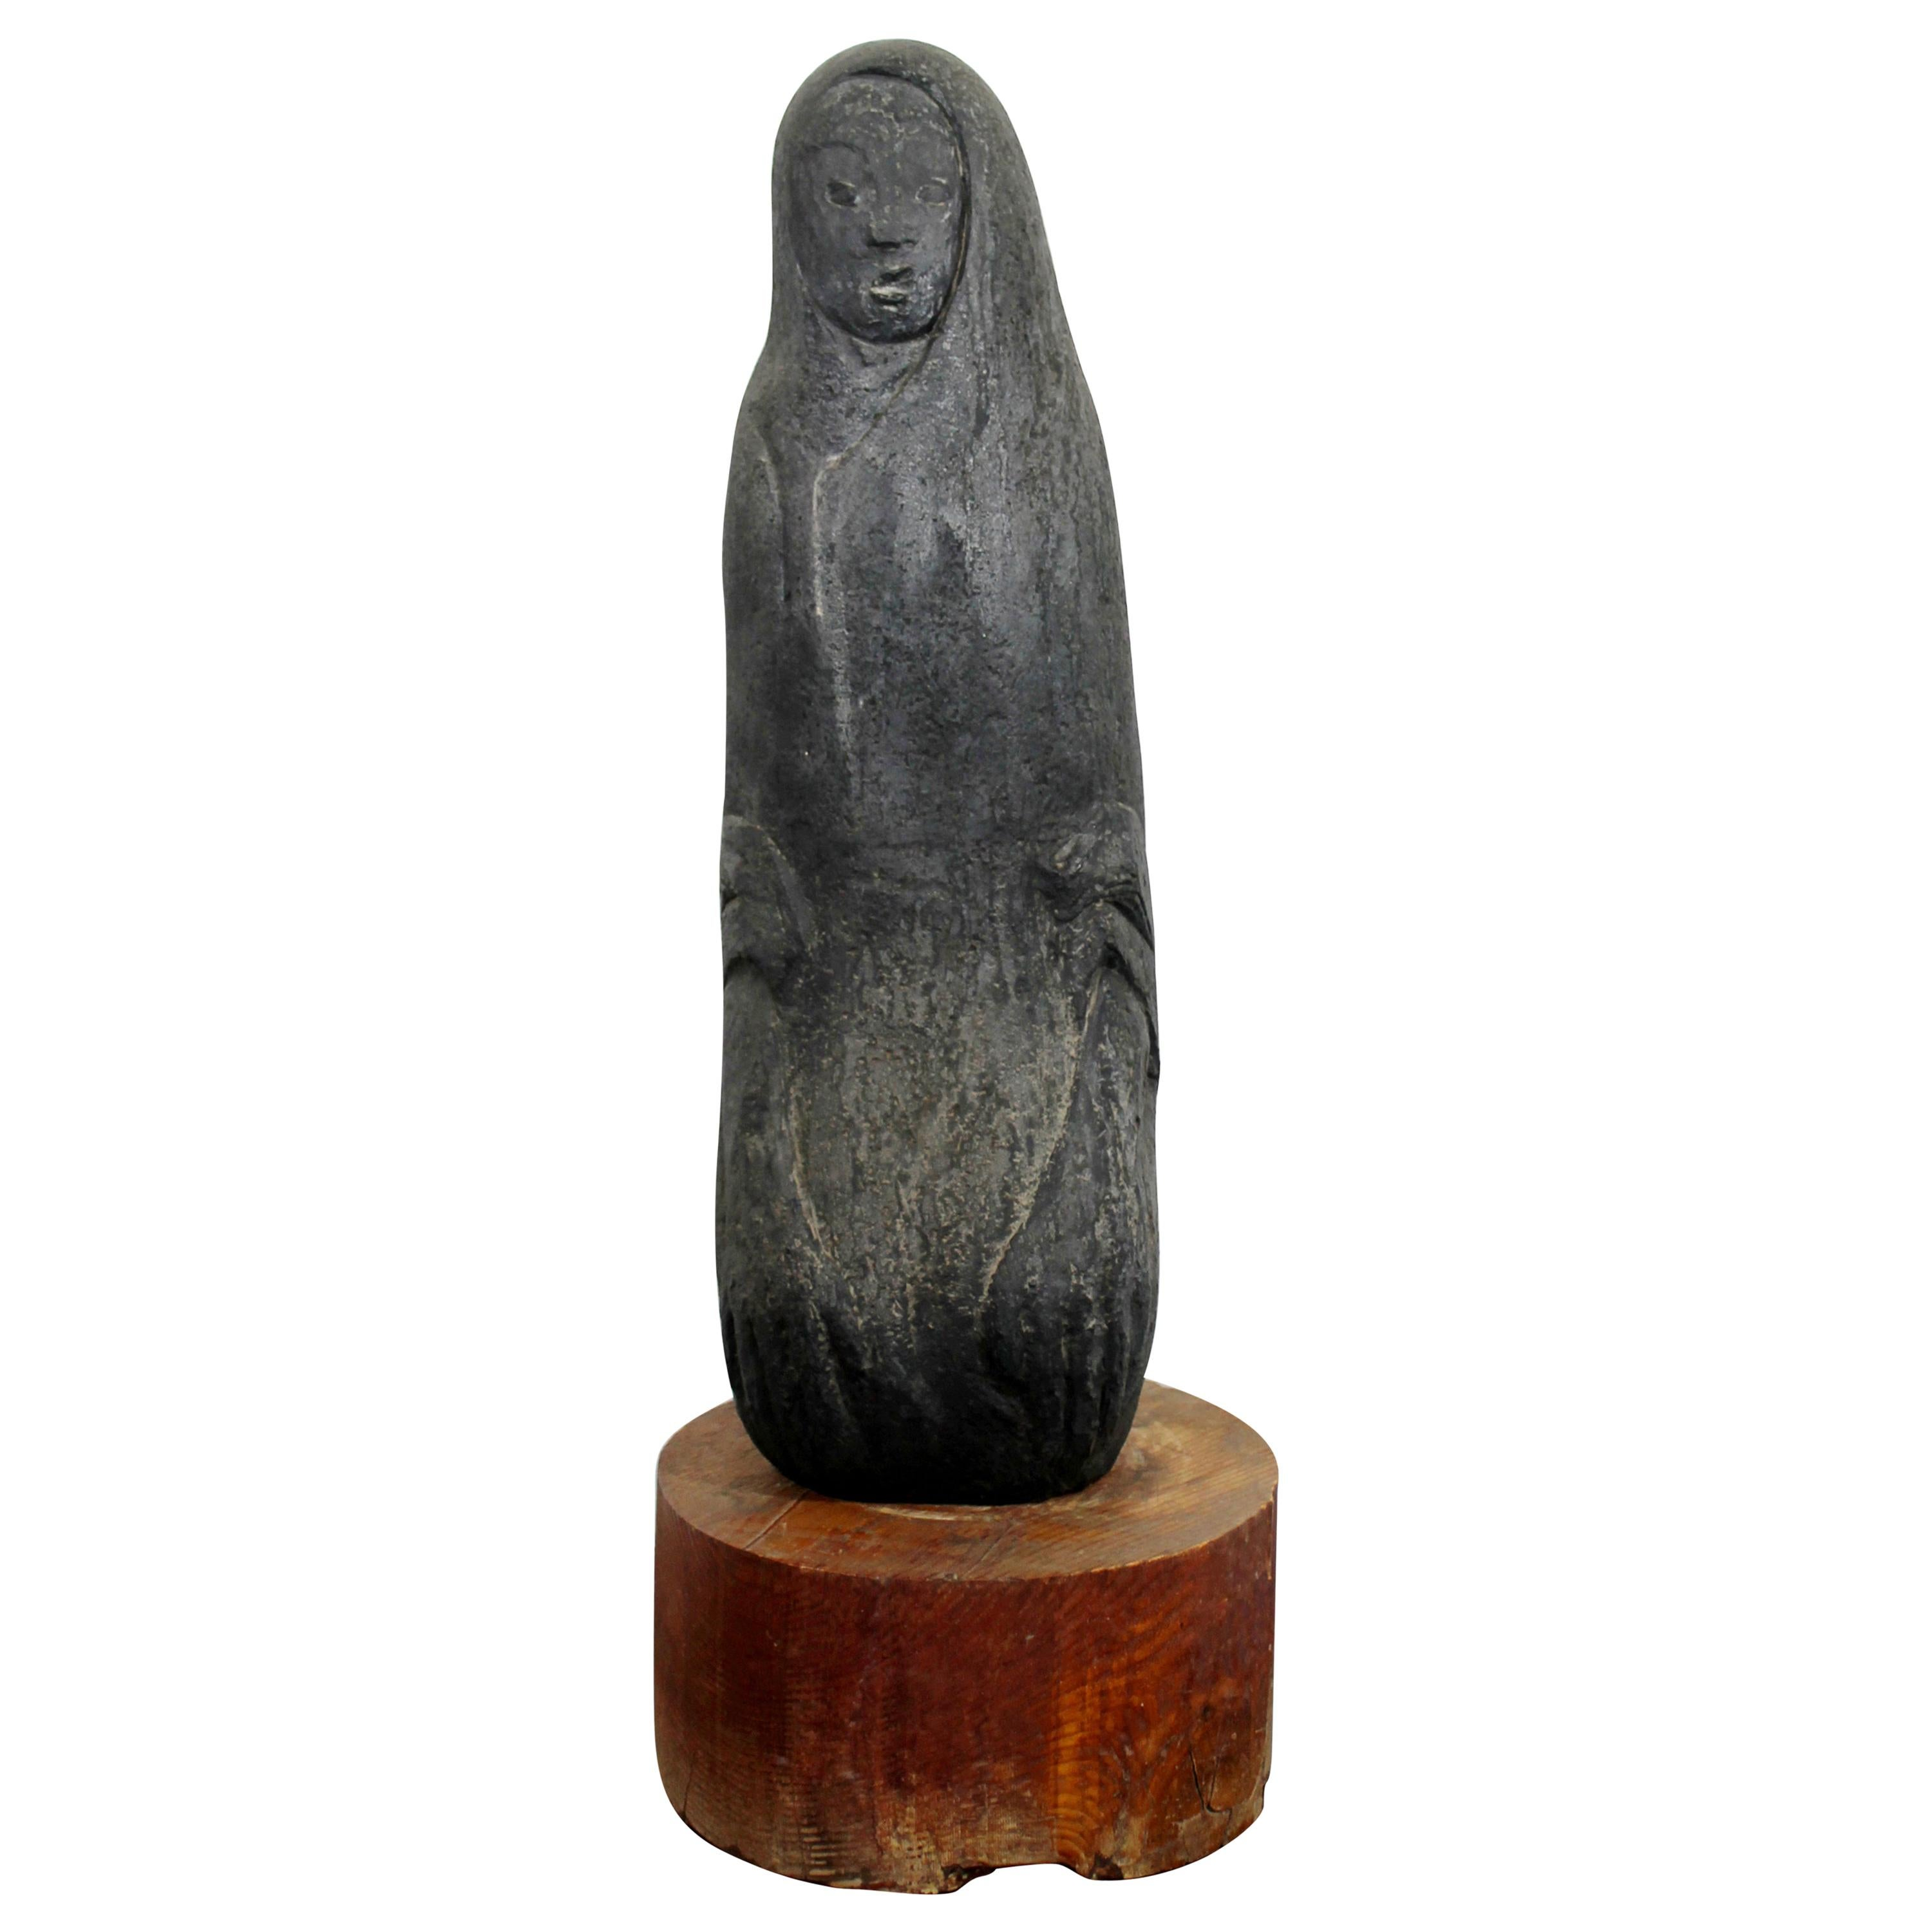 Mid-Century Modern Porous Stone Table Sculpture Abstracted Figure on Wood Base